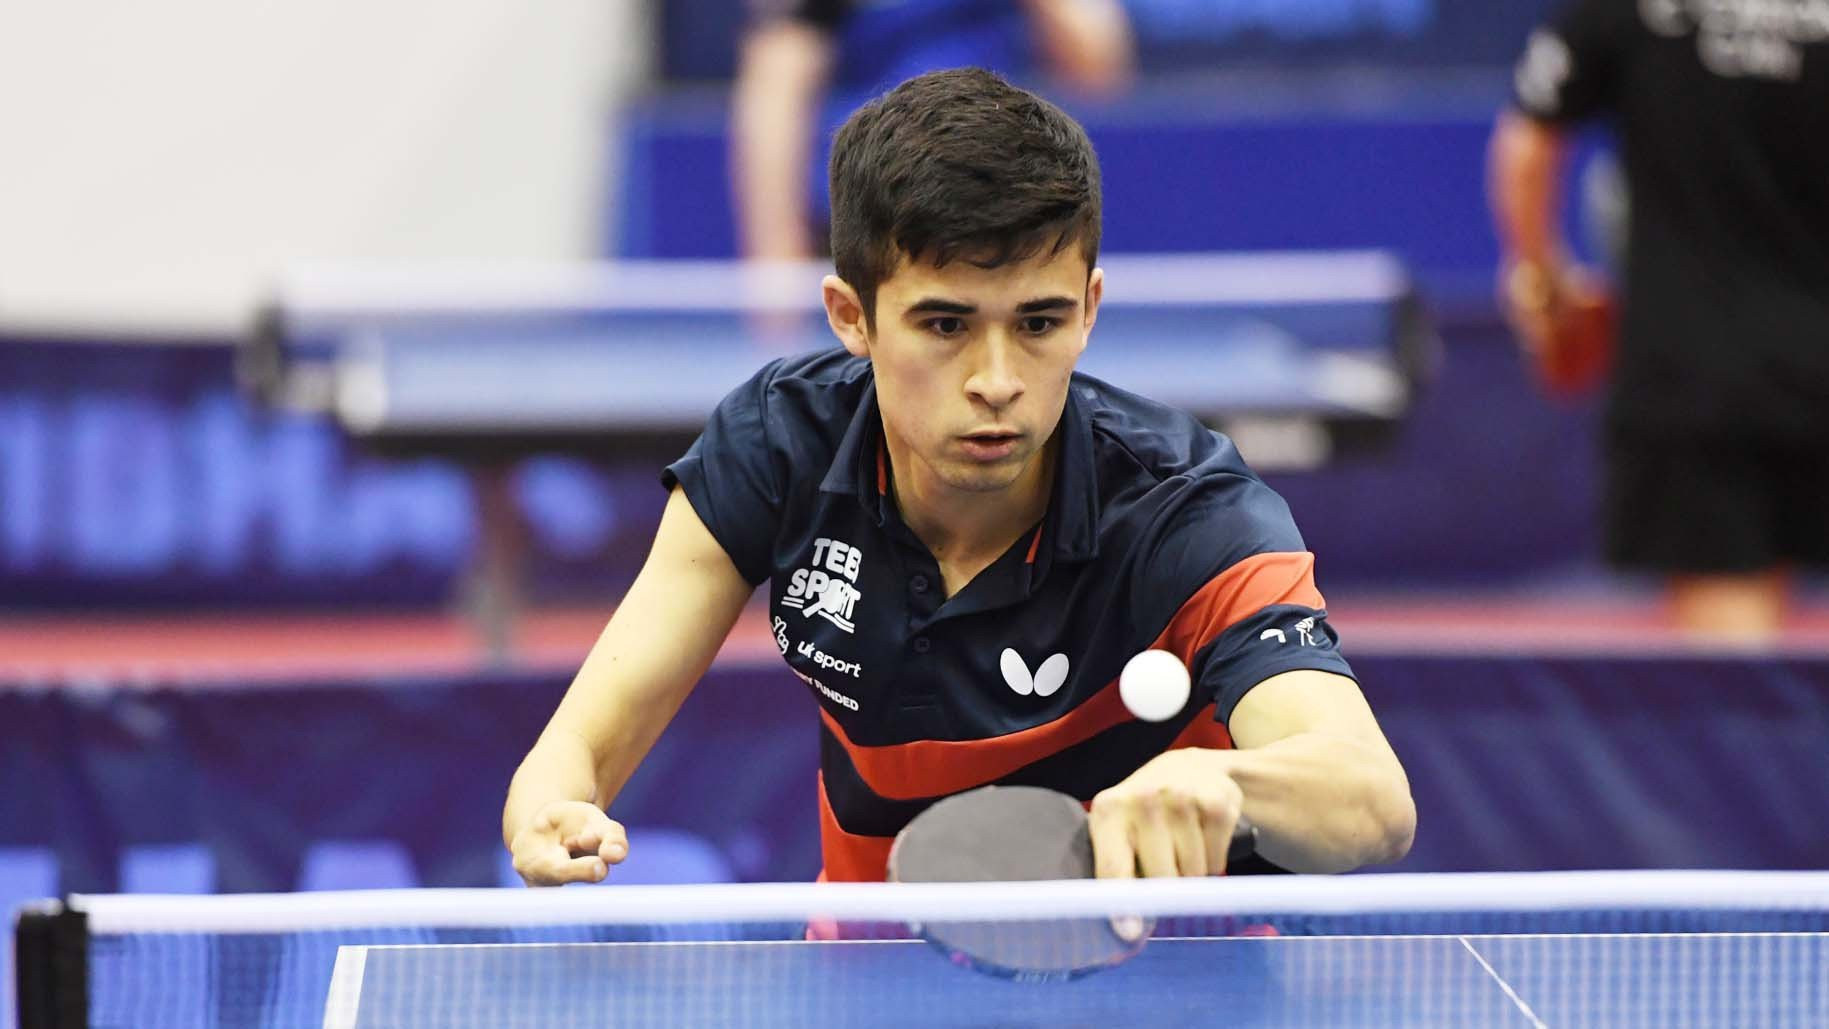 Britain's Gold Coast Commonwealth Games silver medallist Kim Daybell was unable to prevent Poland earning a 2-0 win in their class 10 match today as team play started at the ITTF Para European Championships in Sweden ©ITTF